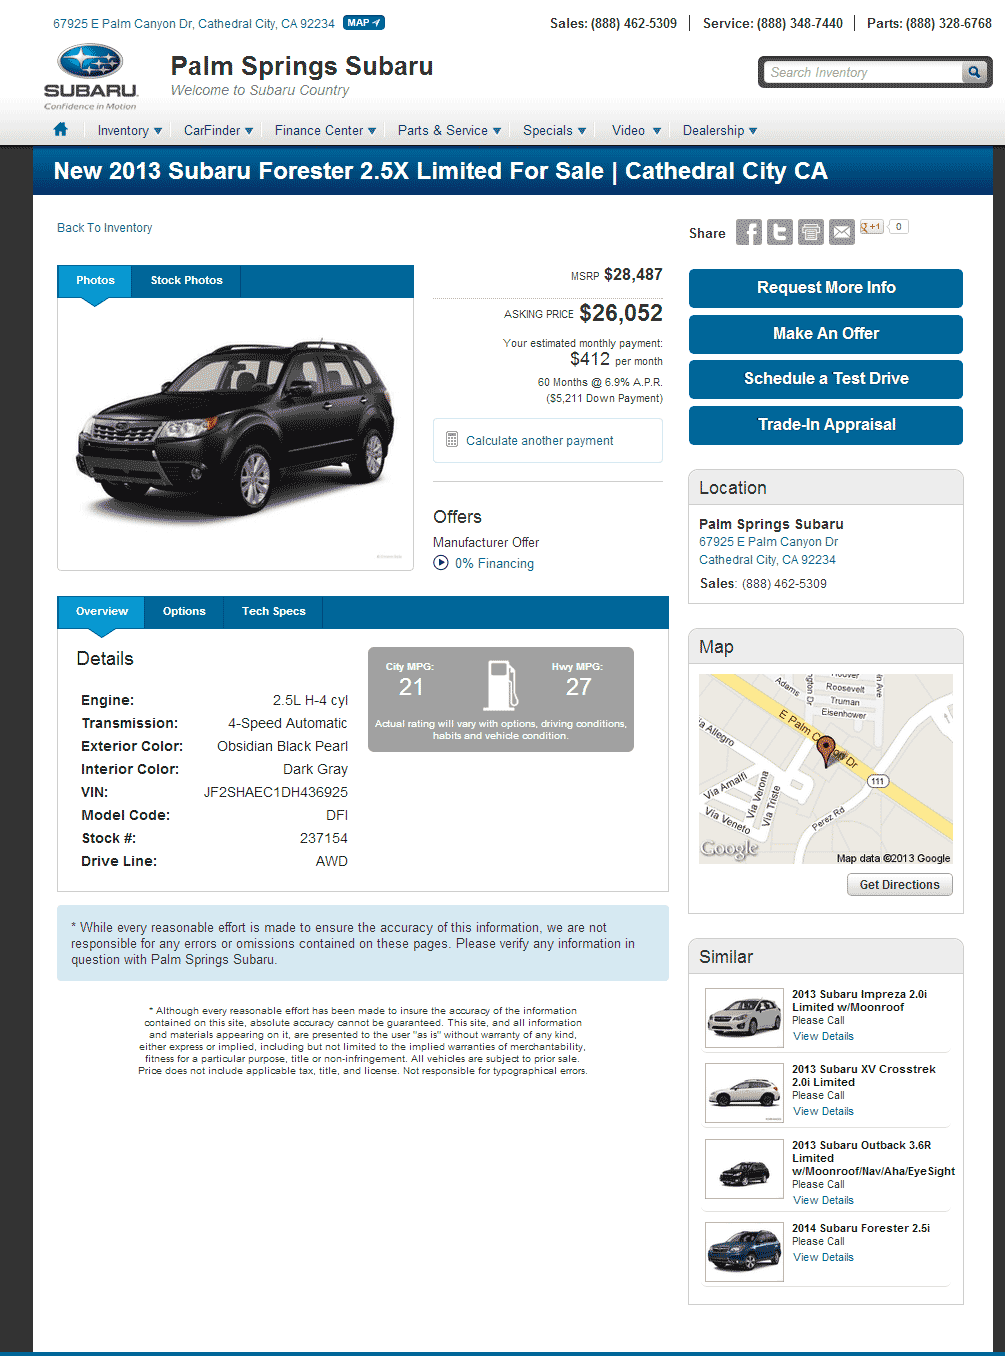 2013 Subaru Forester Real Dealer Prices Free